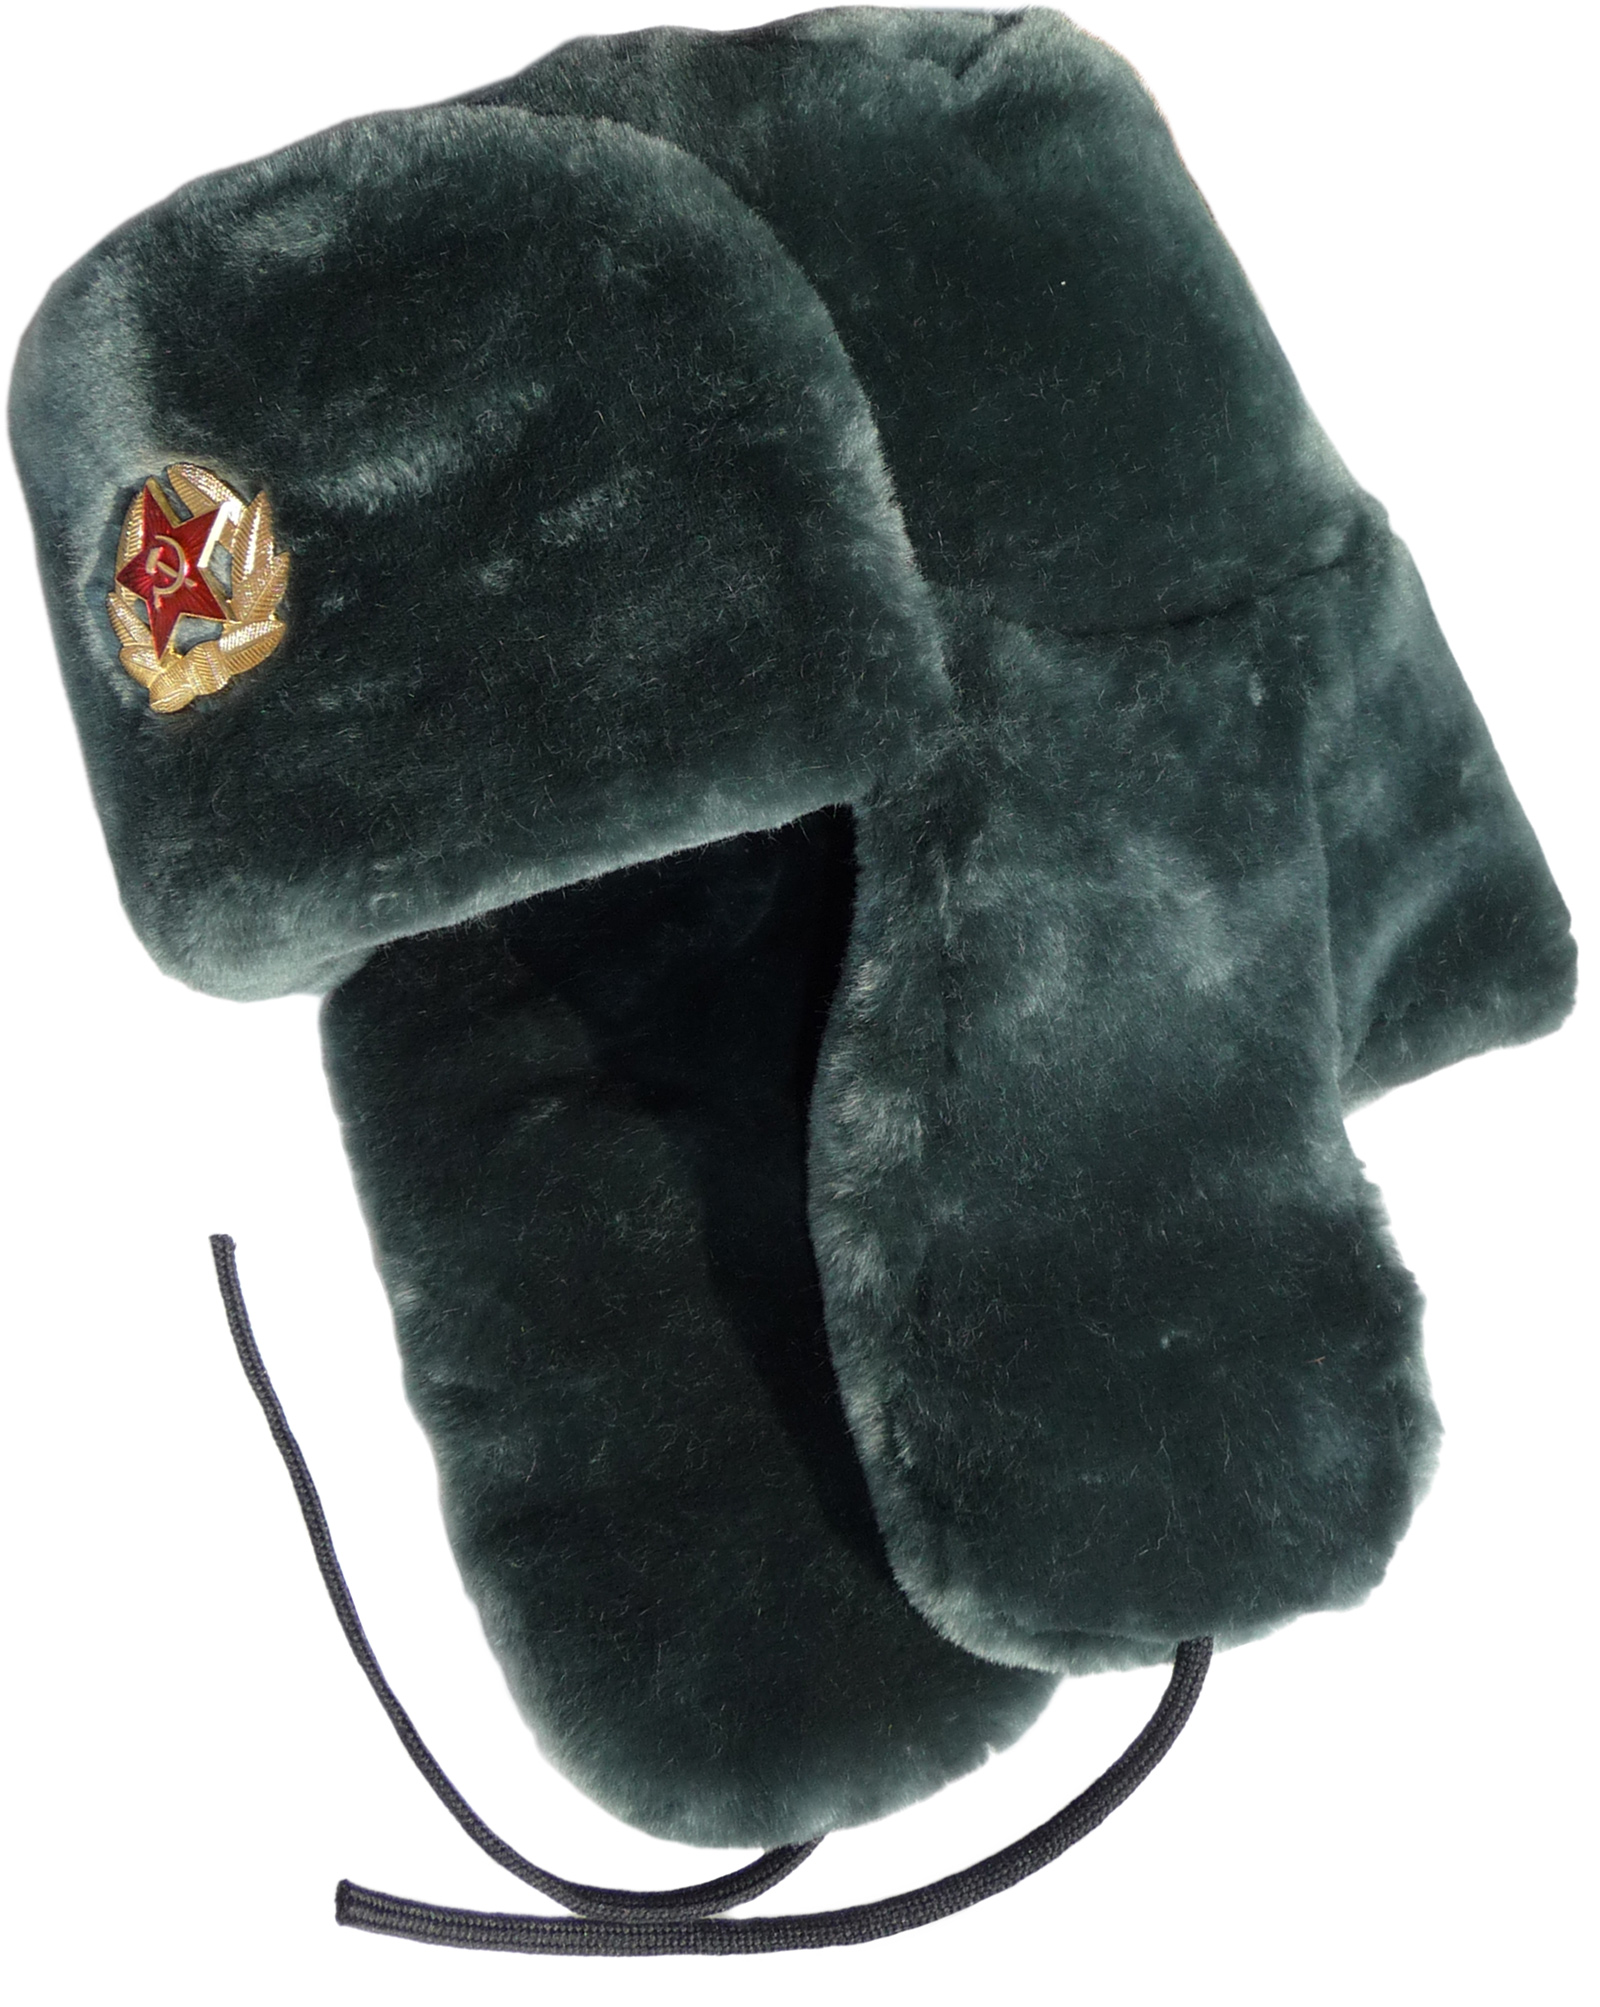 de97514a4dbaf Sheepskin-like faux fur ushanka hat.